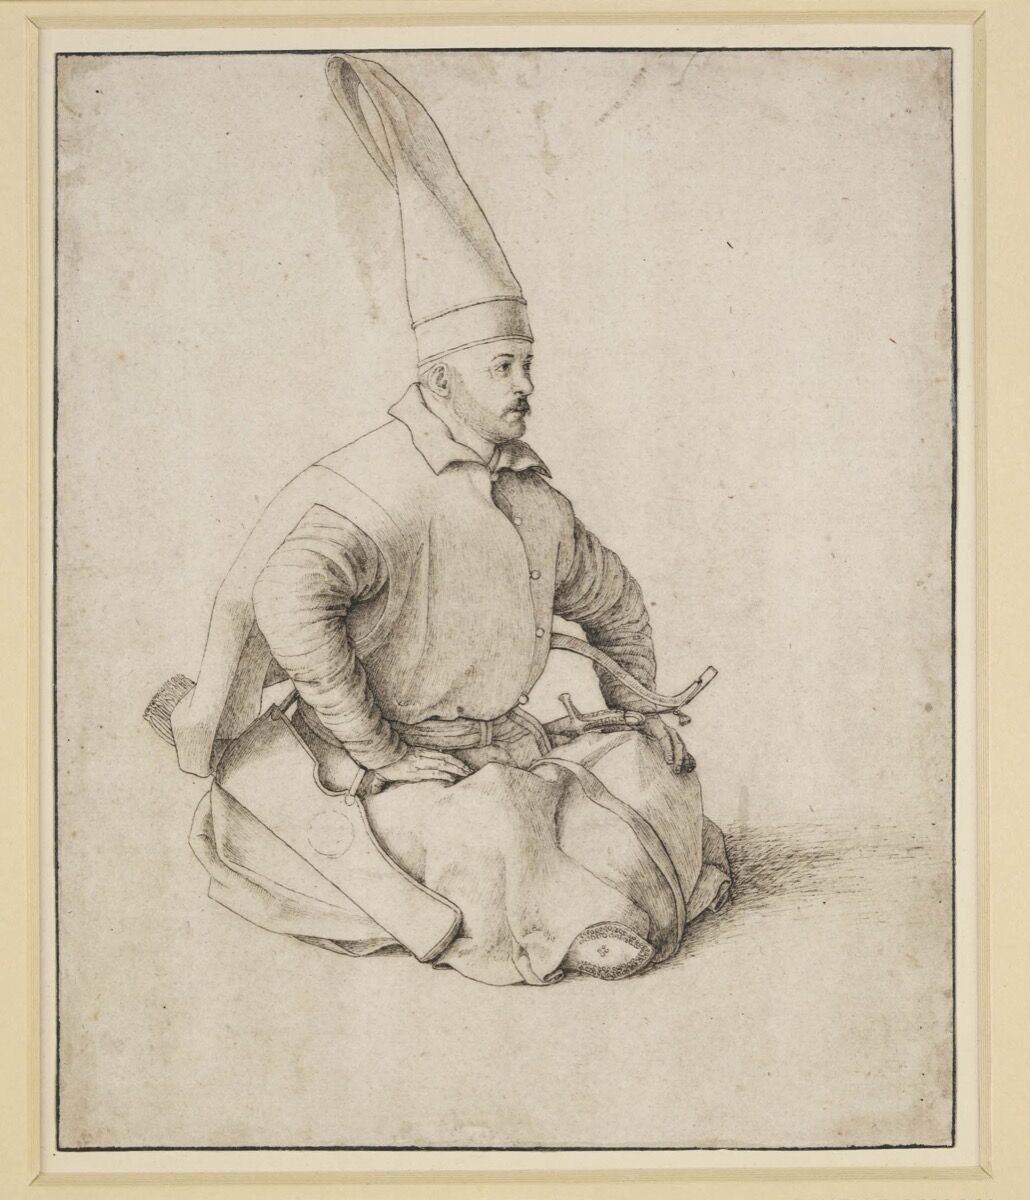 Gentile Bellini, A Turkish Janissary, c. 1480. Courtesy of the British Museum, London.